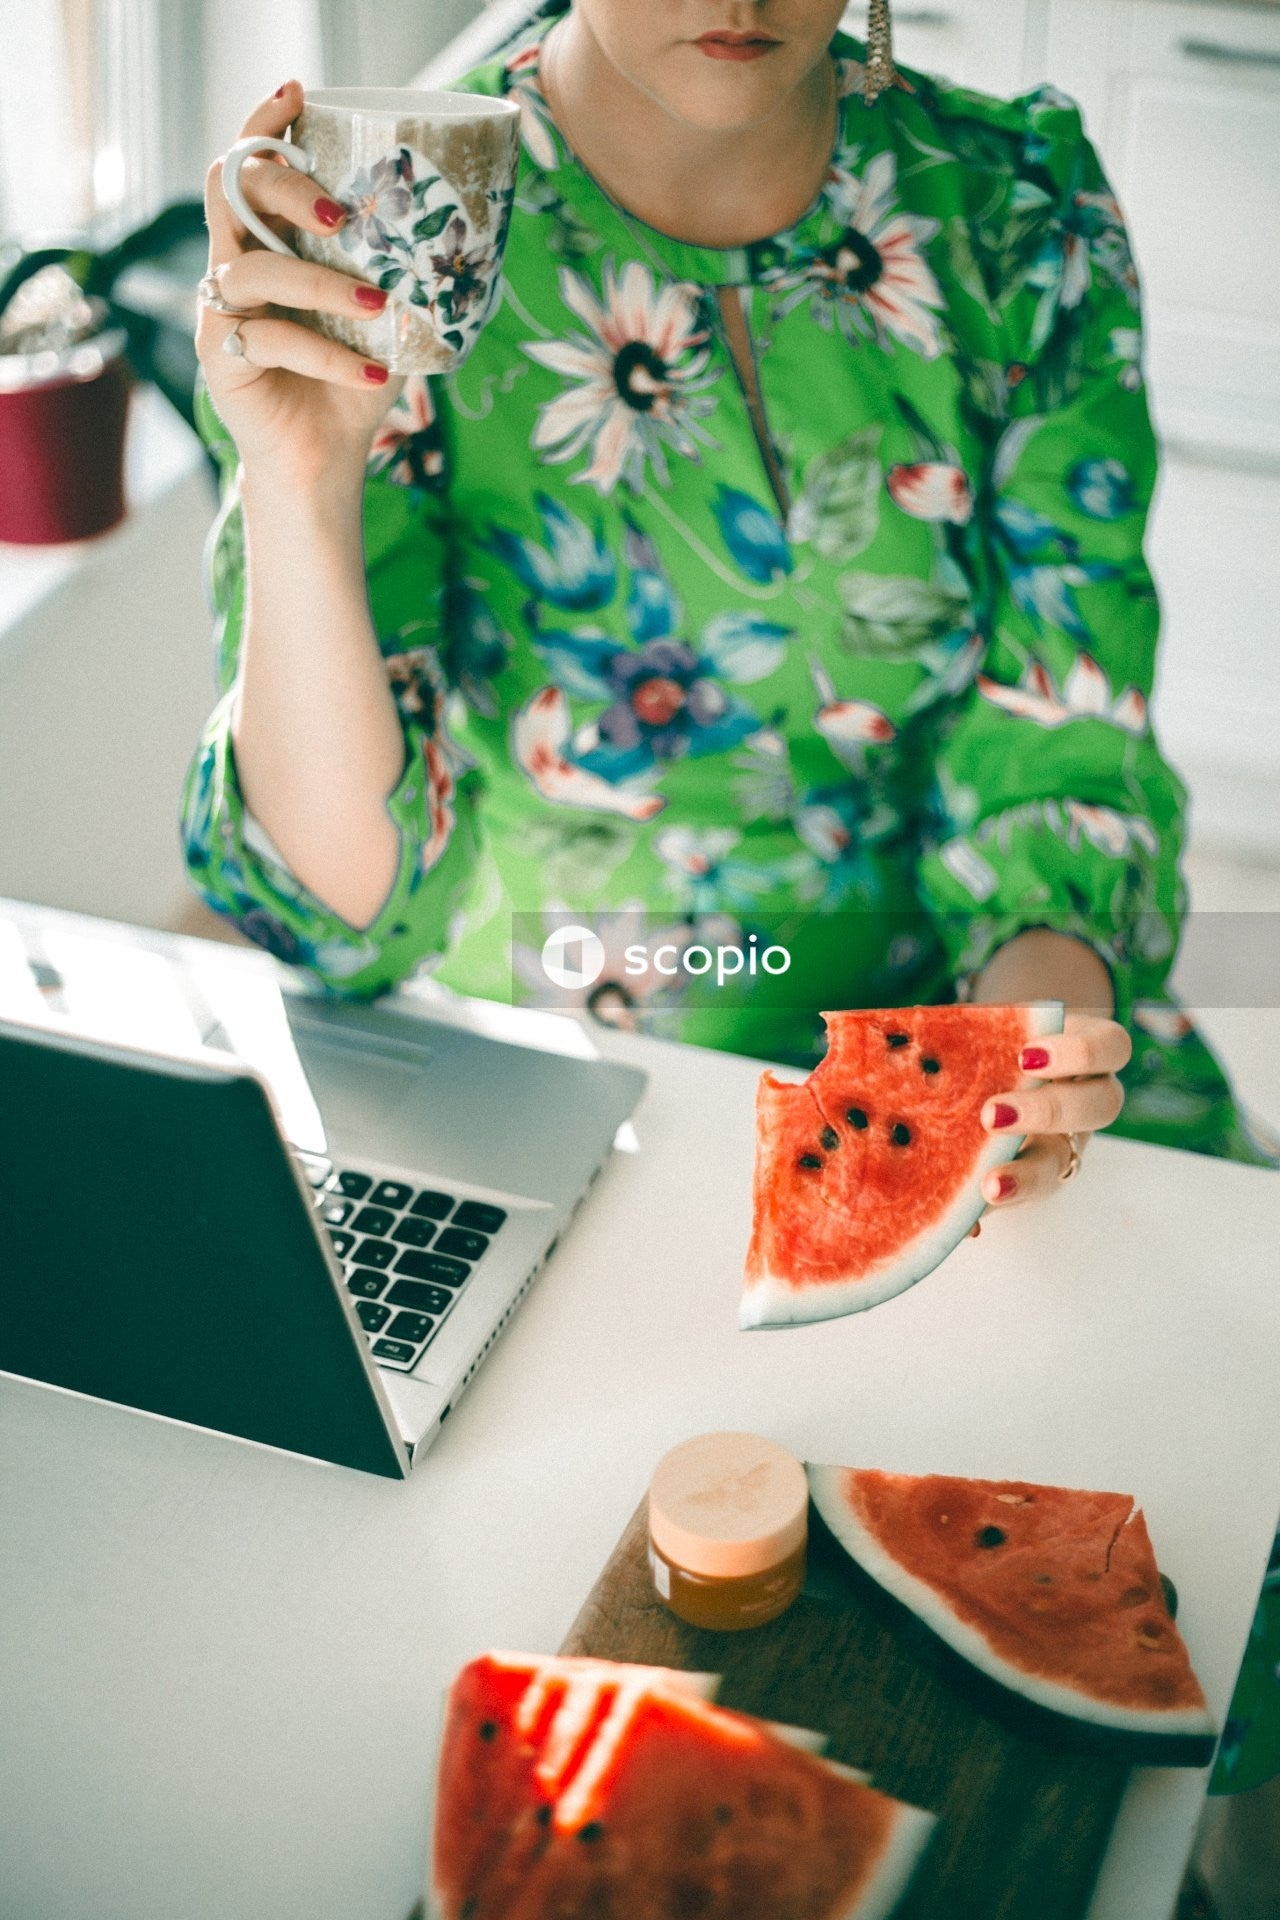 Woman in green and white floral dress holding sliced watermelon